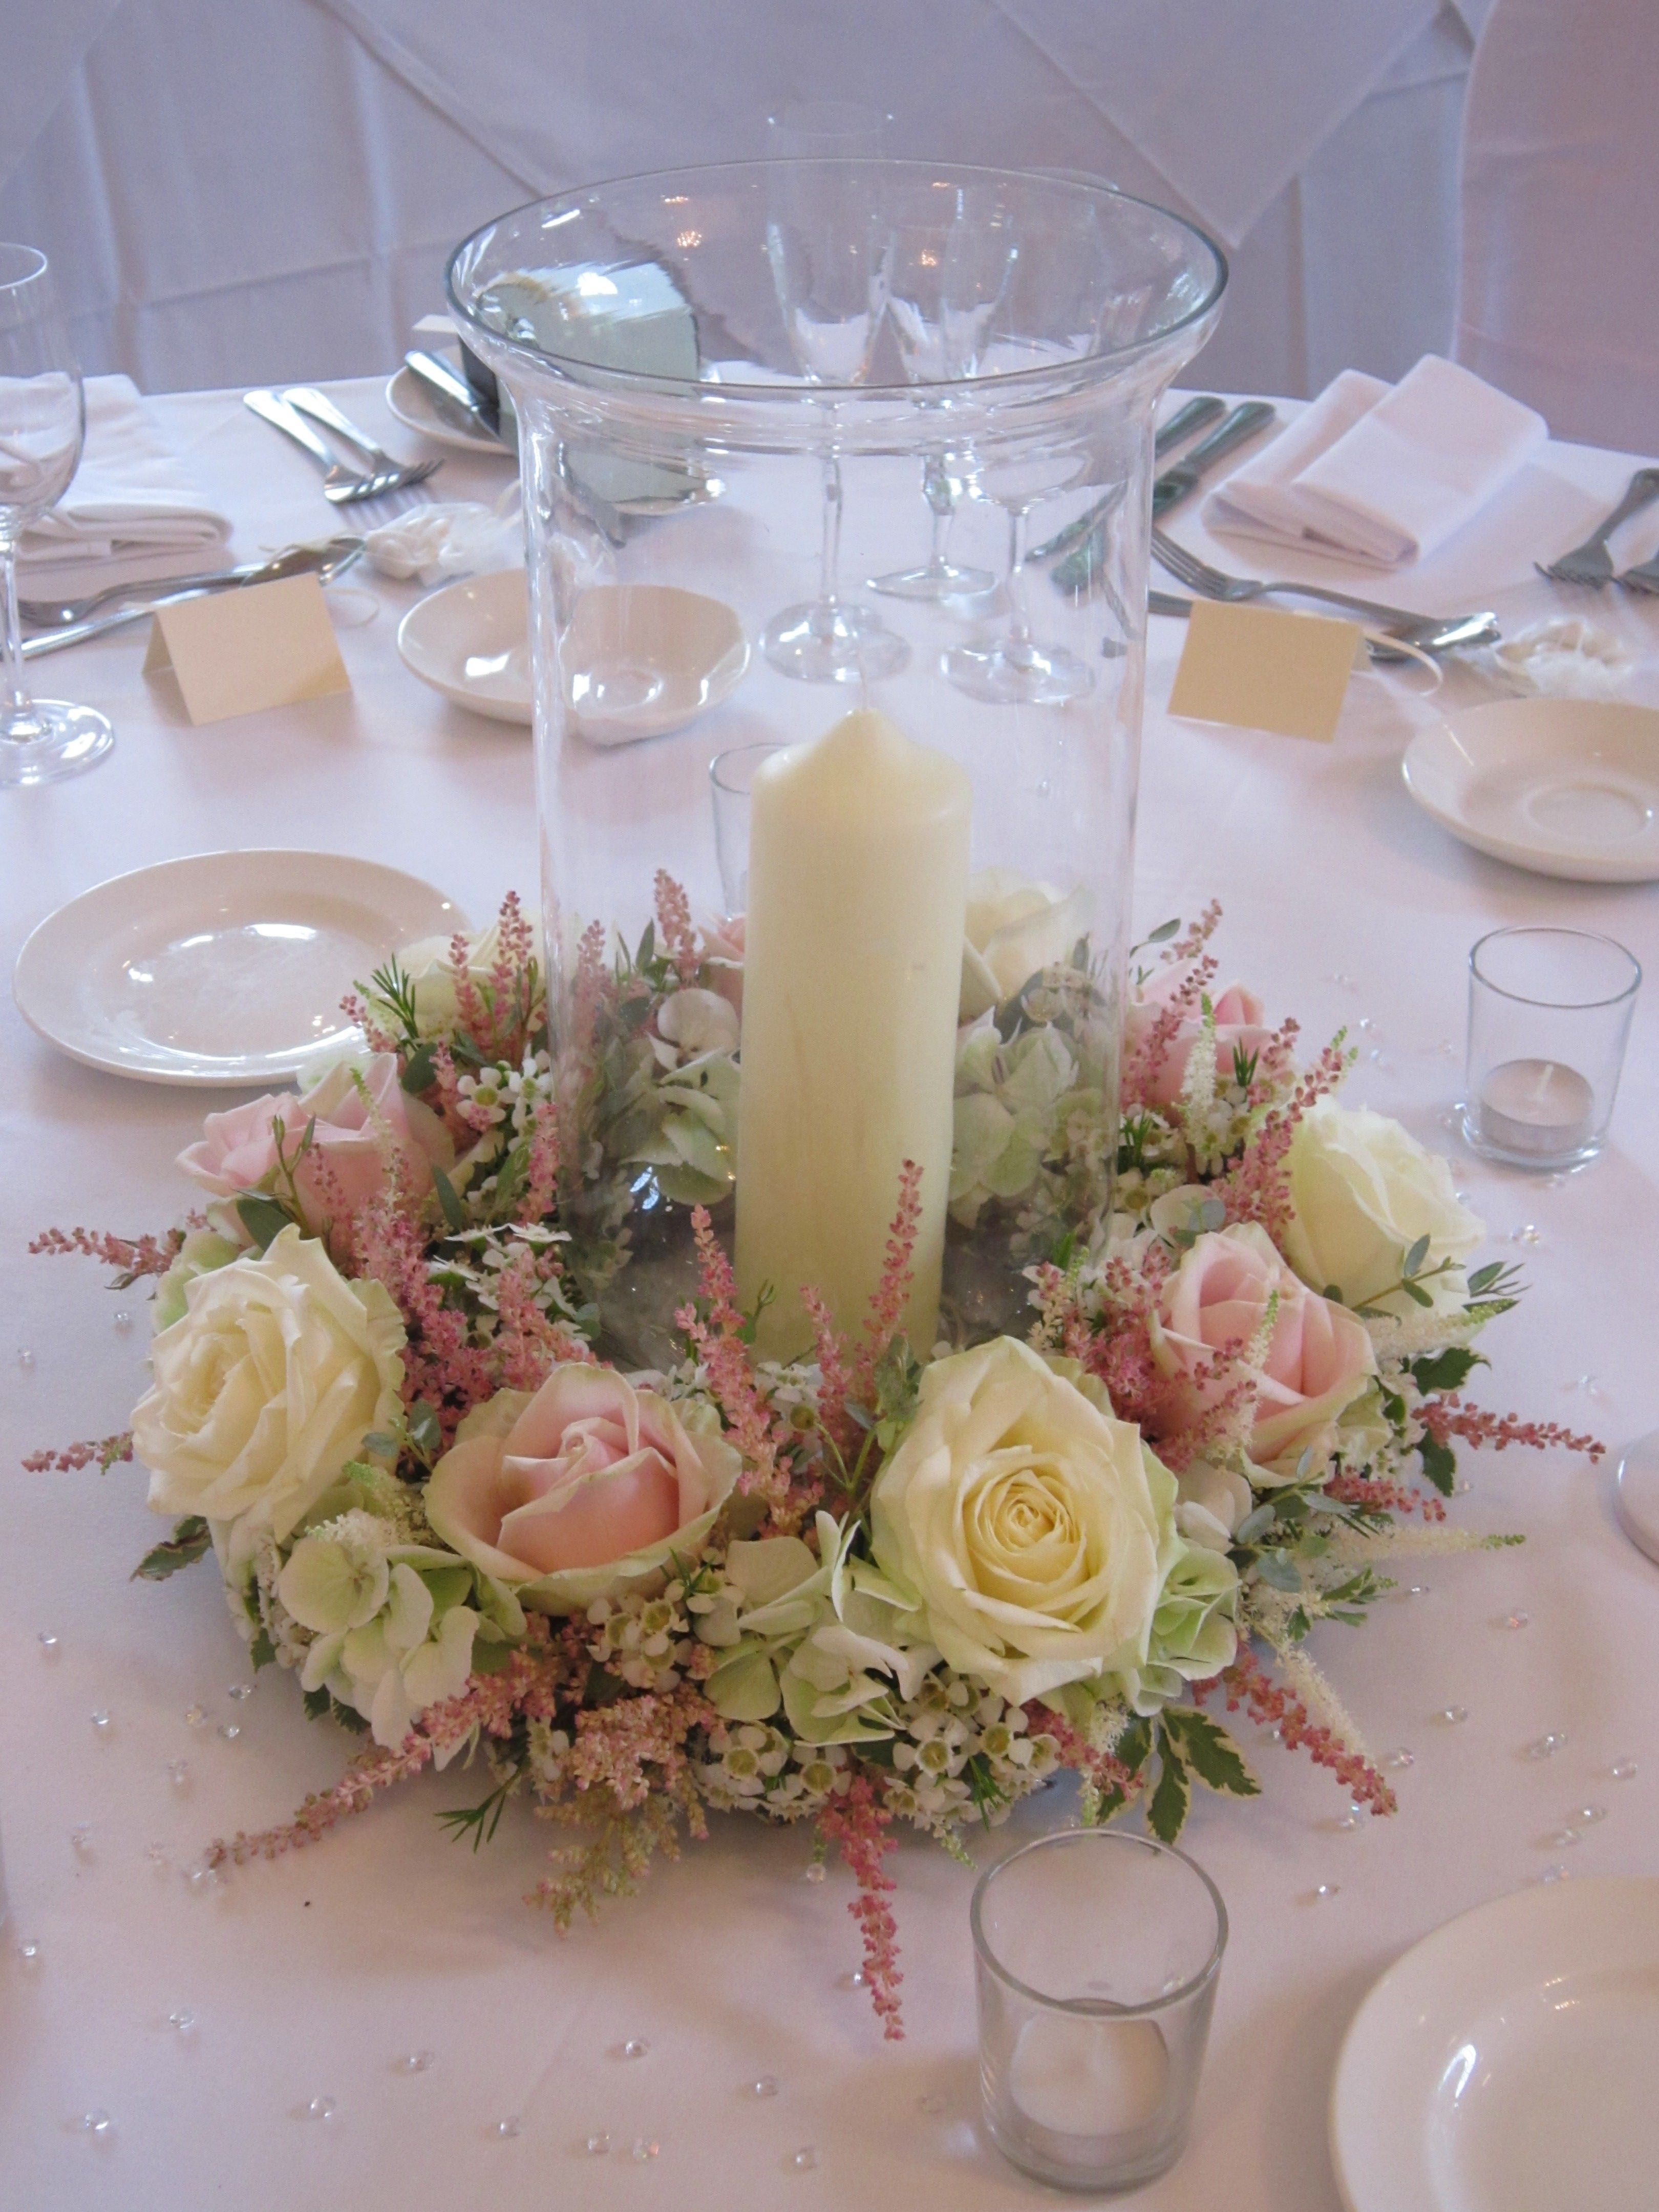 floral and candle centerpiece - Bing images